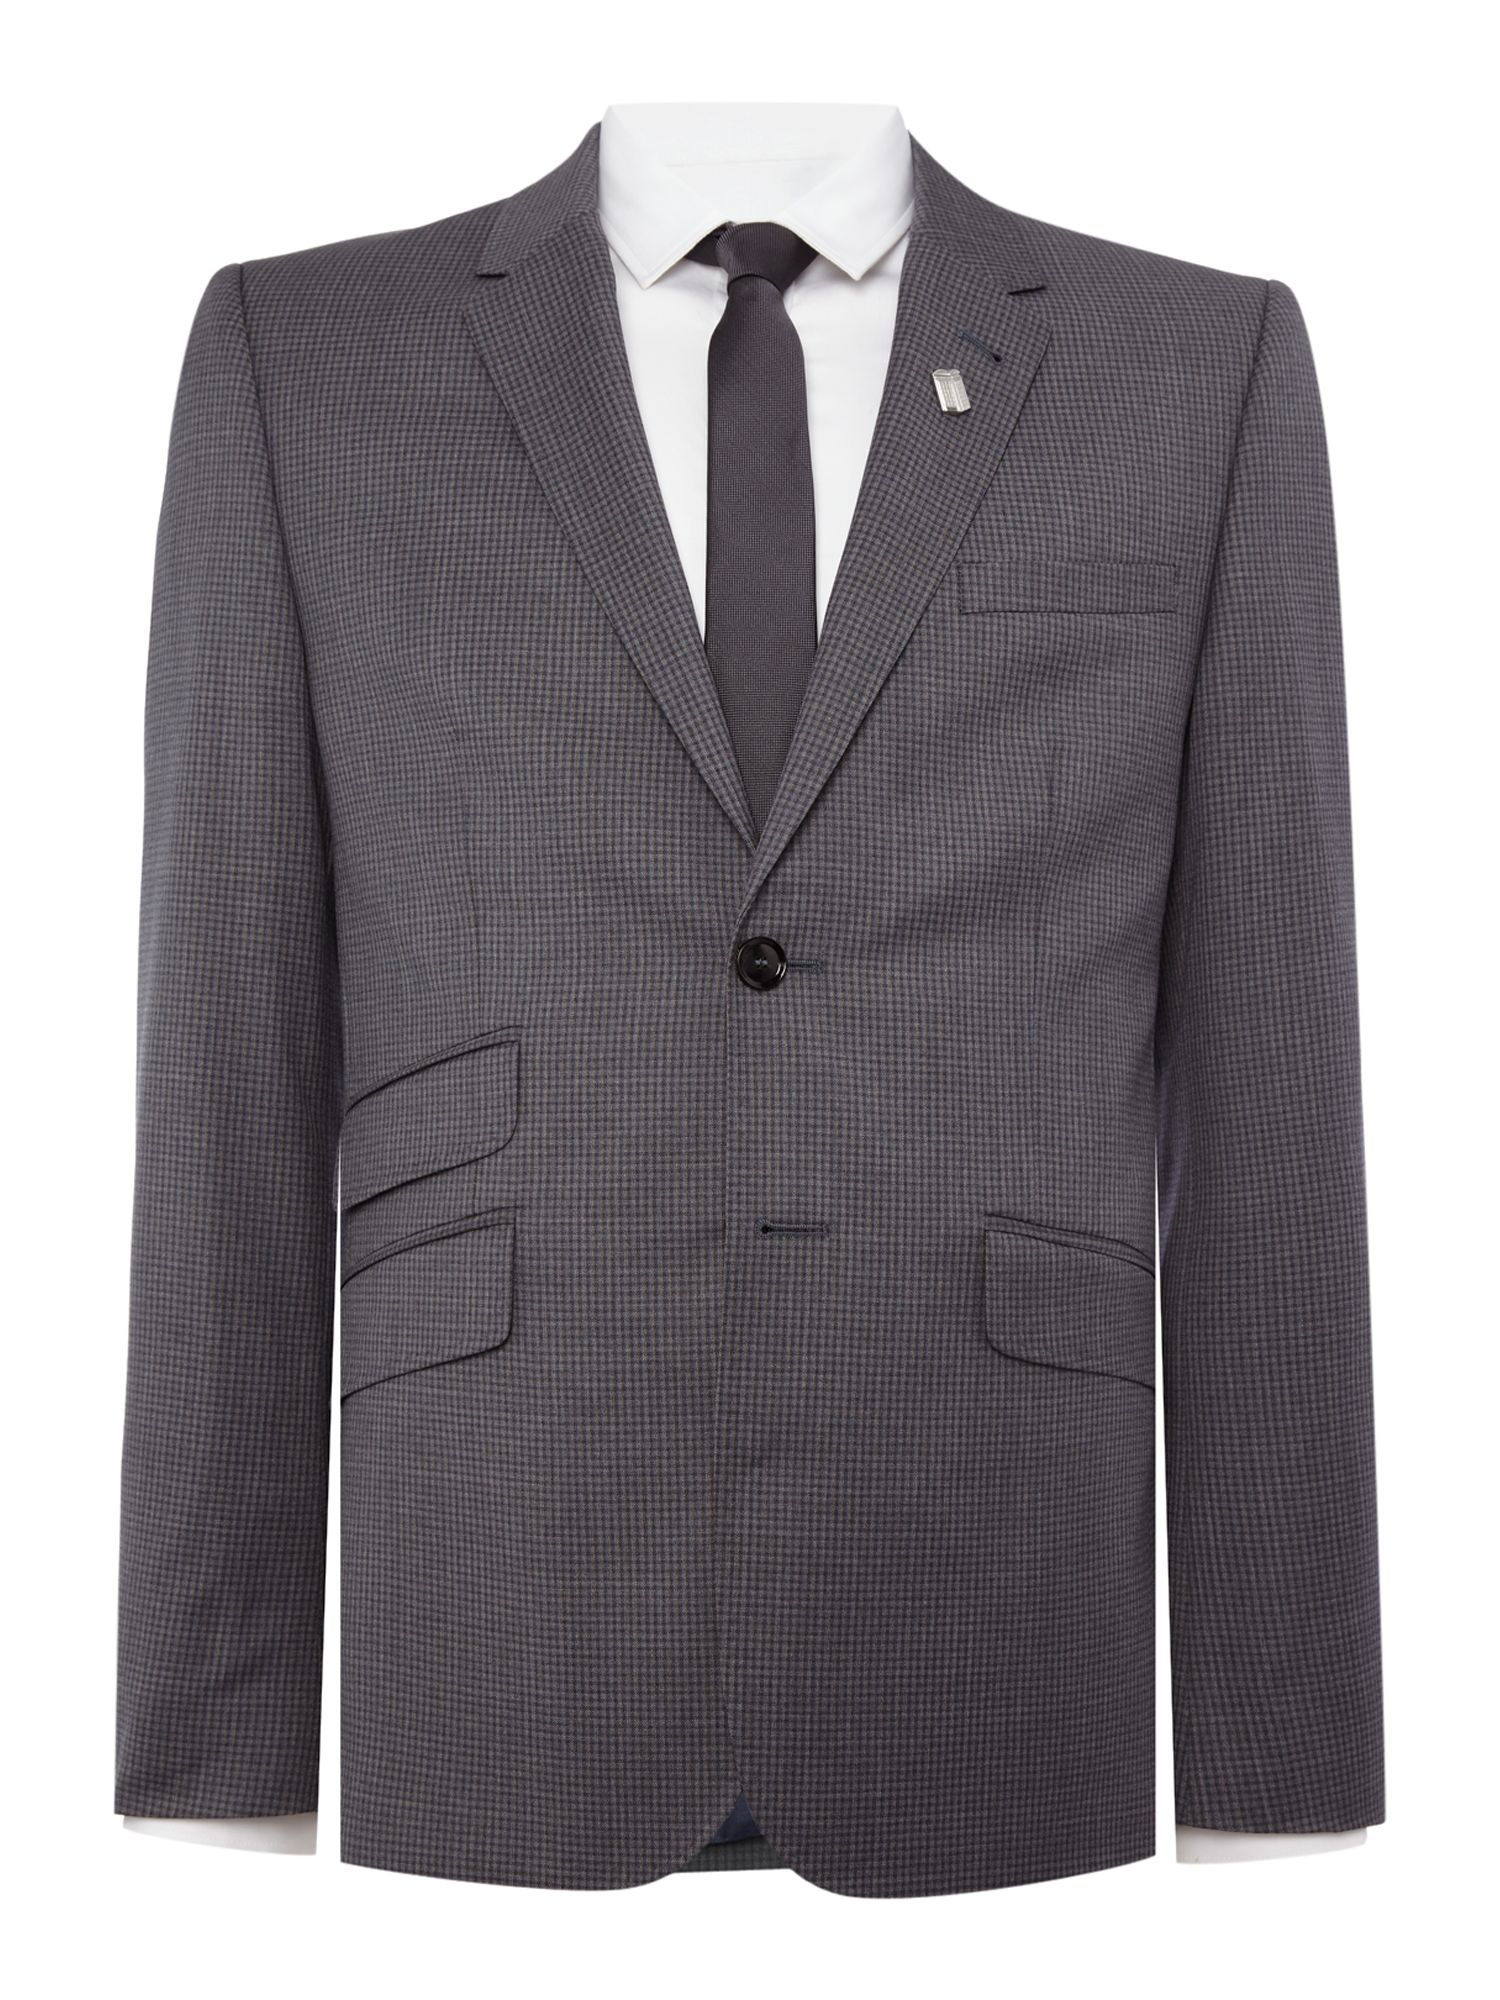 Mens Ted Baker Single Breasted Giraffe Tonal Check Suit Jacket Grey